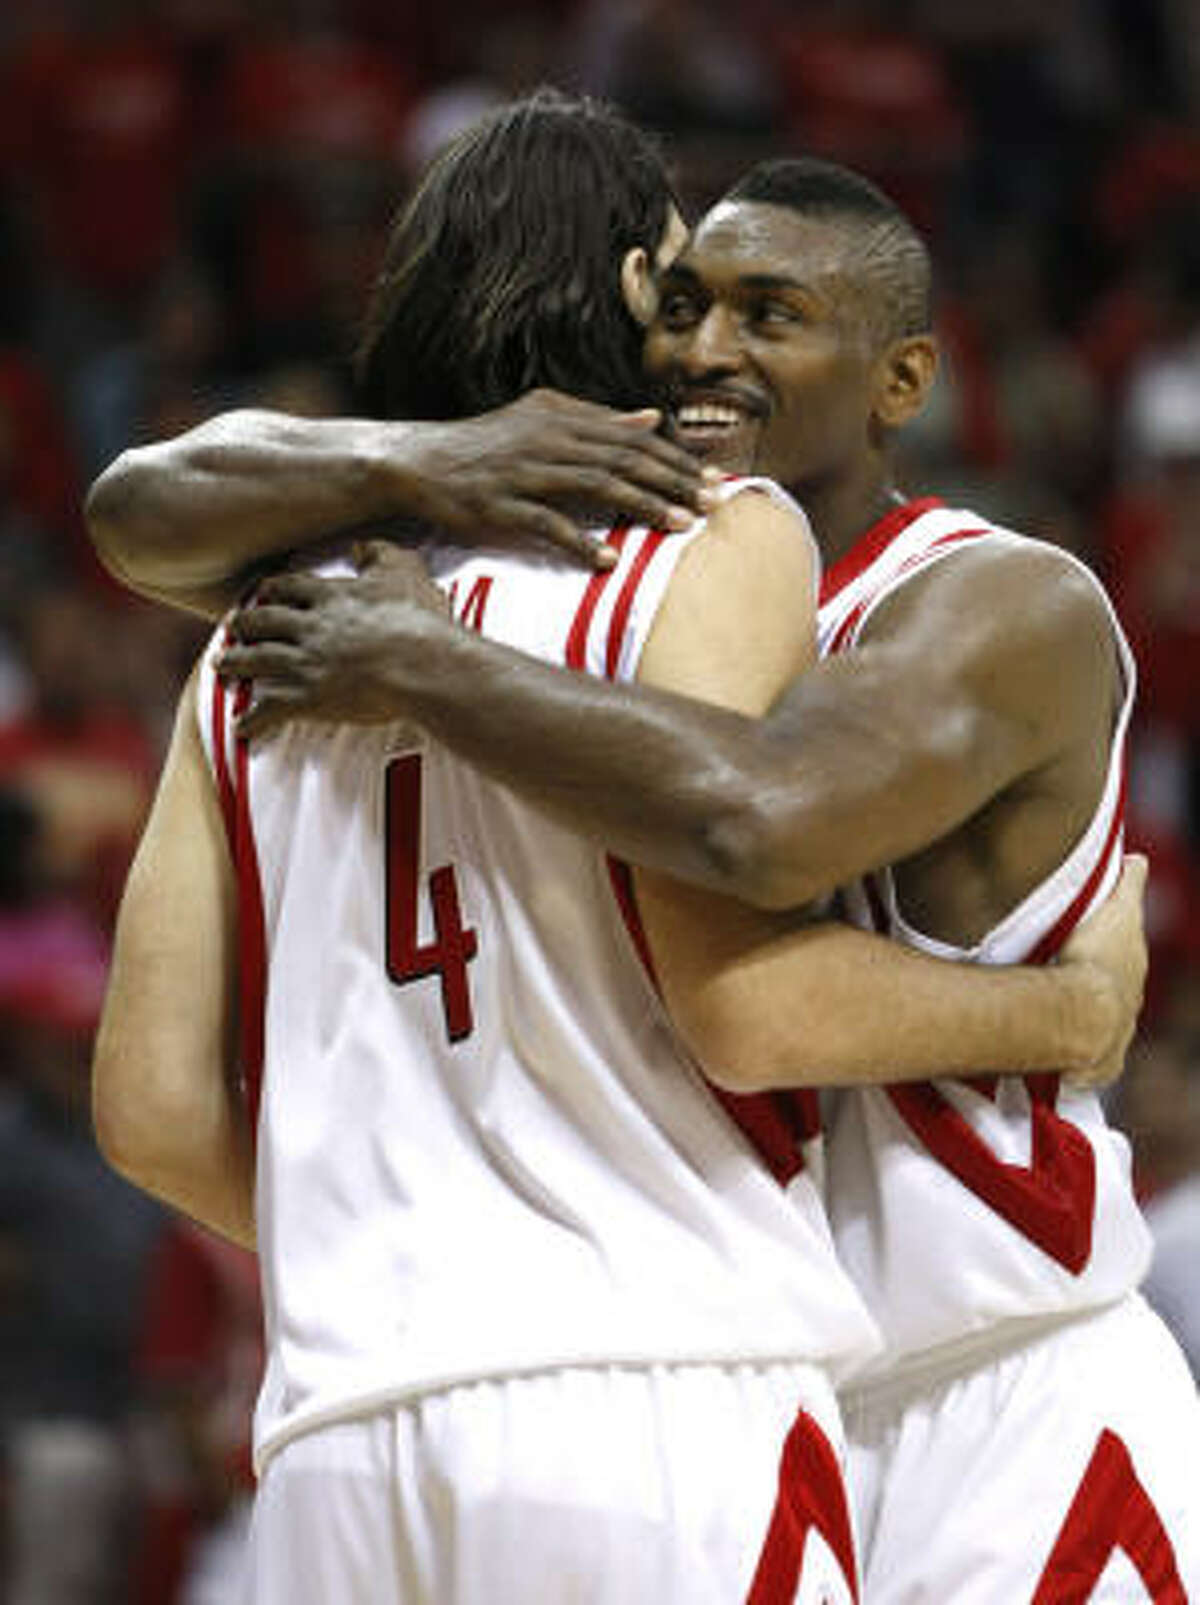 Rockets forward Luis Scola and Rockets guard Ron Artest embrace near the end of the fourth quarter.